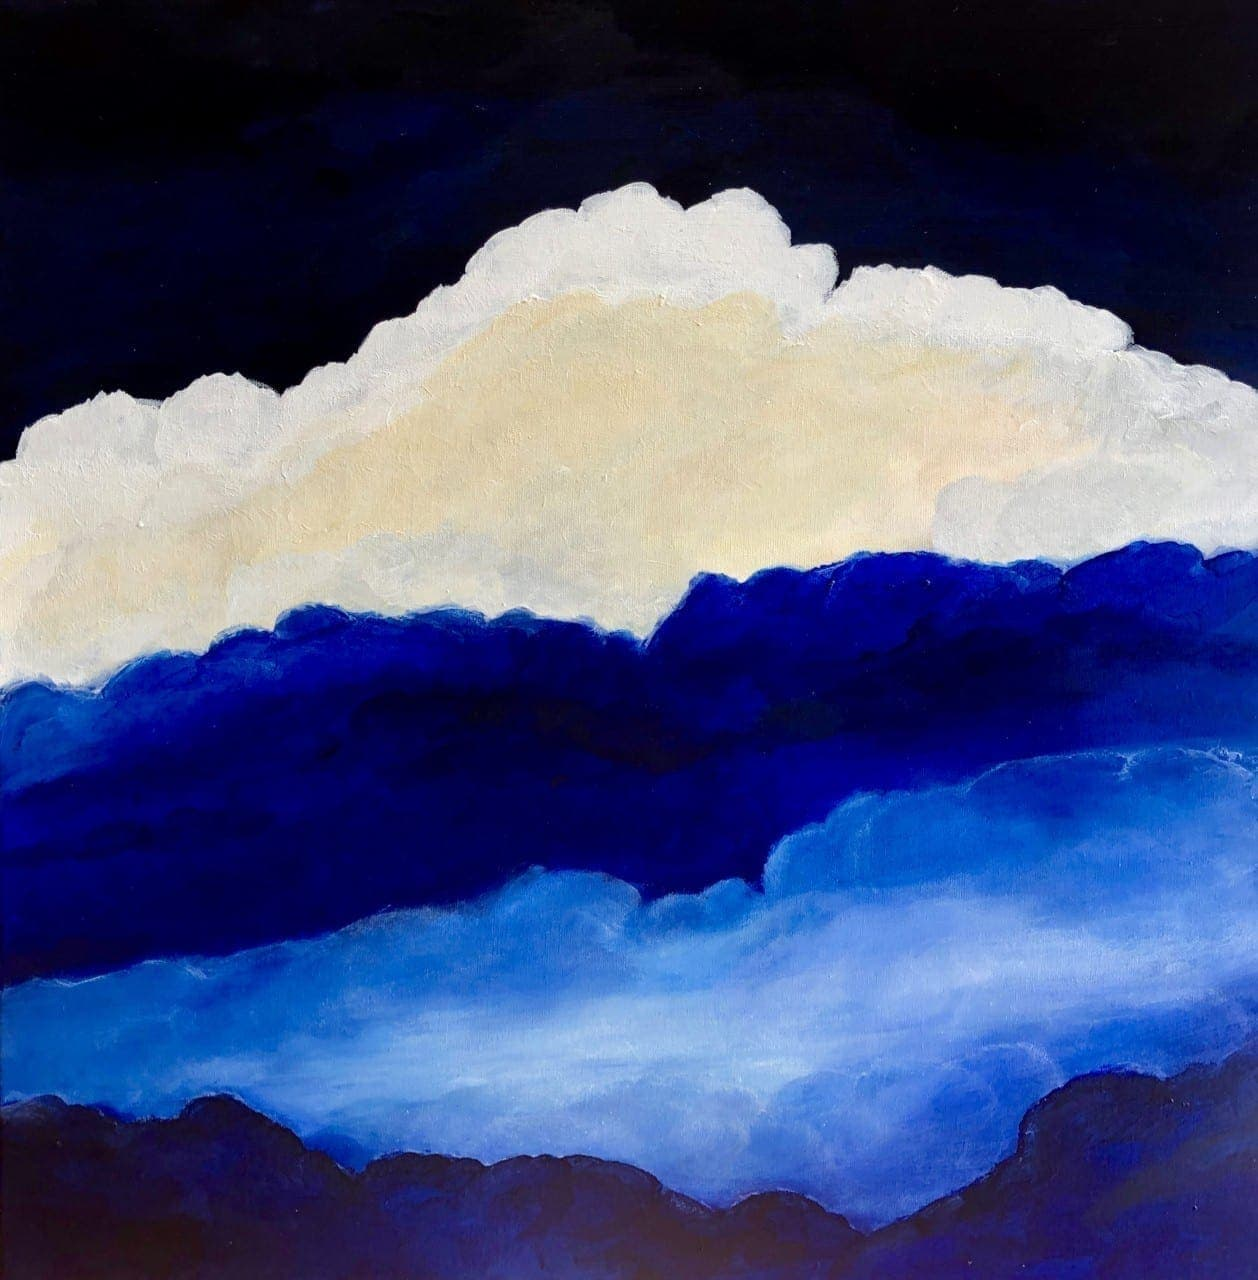 """""""Atmosphere"""" oil on canvas painting of clouds measuring 60 x 60 cm or 23.5 x 23.5 inches. With blue and white clouds and a deep indigo blue sky.#artistsupportpledge"""